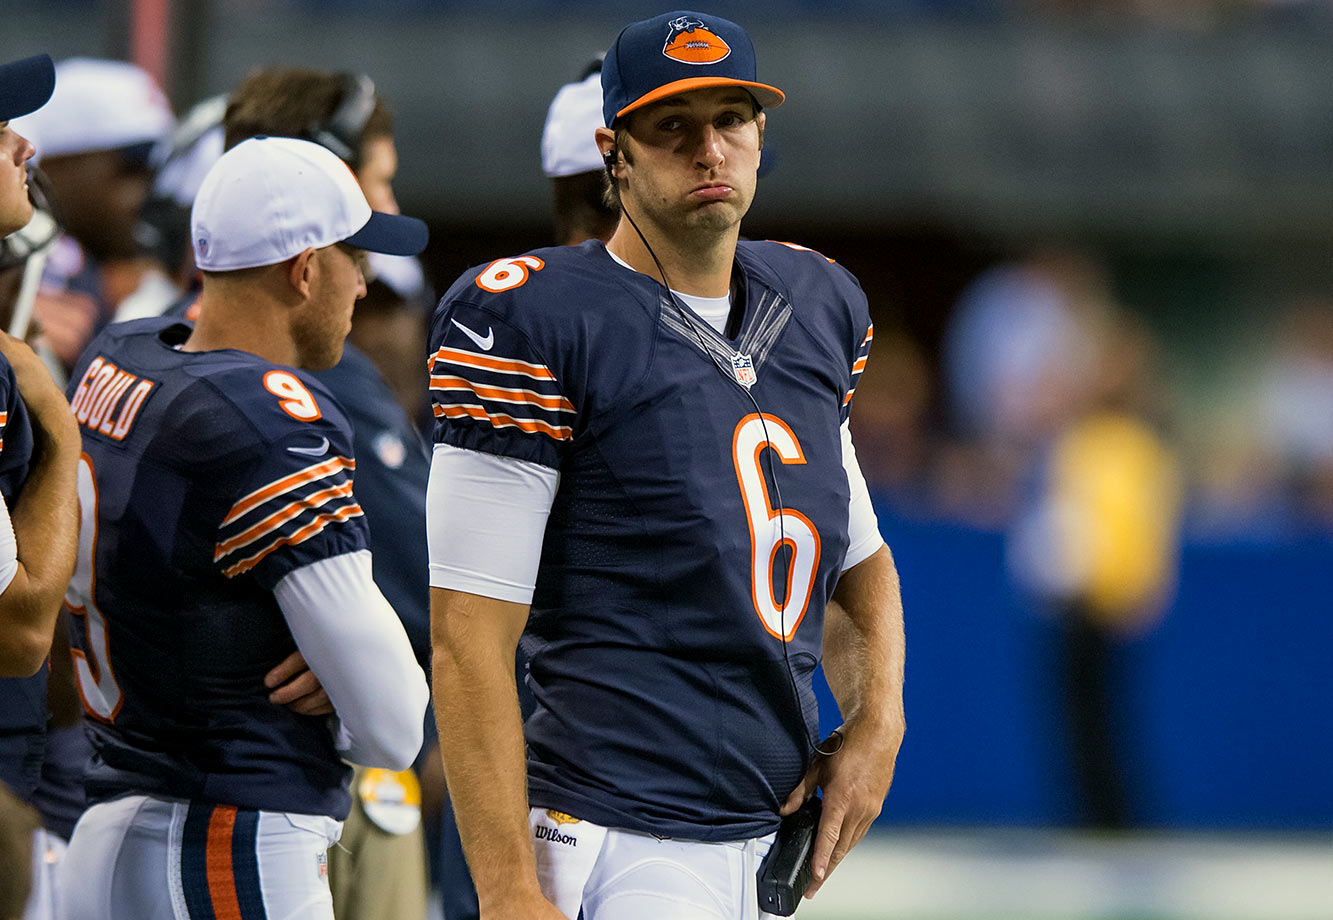 Jay Cutler catches a lot of flak for being – well, Jay Cutler. But he's the Bears' career passing leader! Unfortunately, he lost Marc Trestman, perennial teammate Brandon Marshall and first-round pick Kevin White is recovering from surgery to repair a stress fracture in his shin. Luckily, the Bears' horrible defense will get most of the headlines.